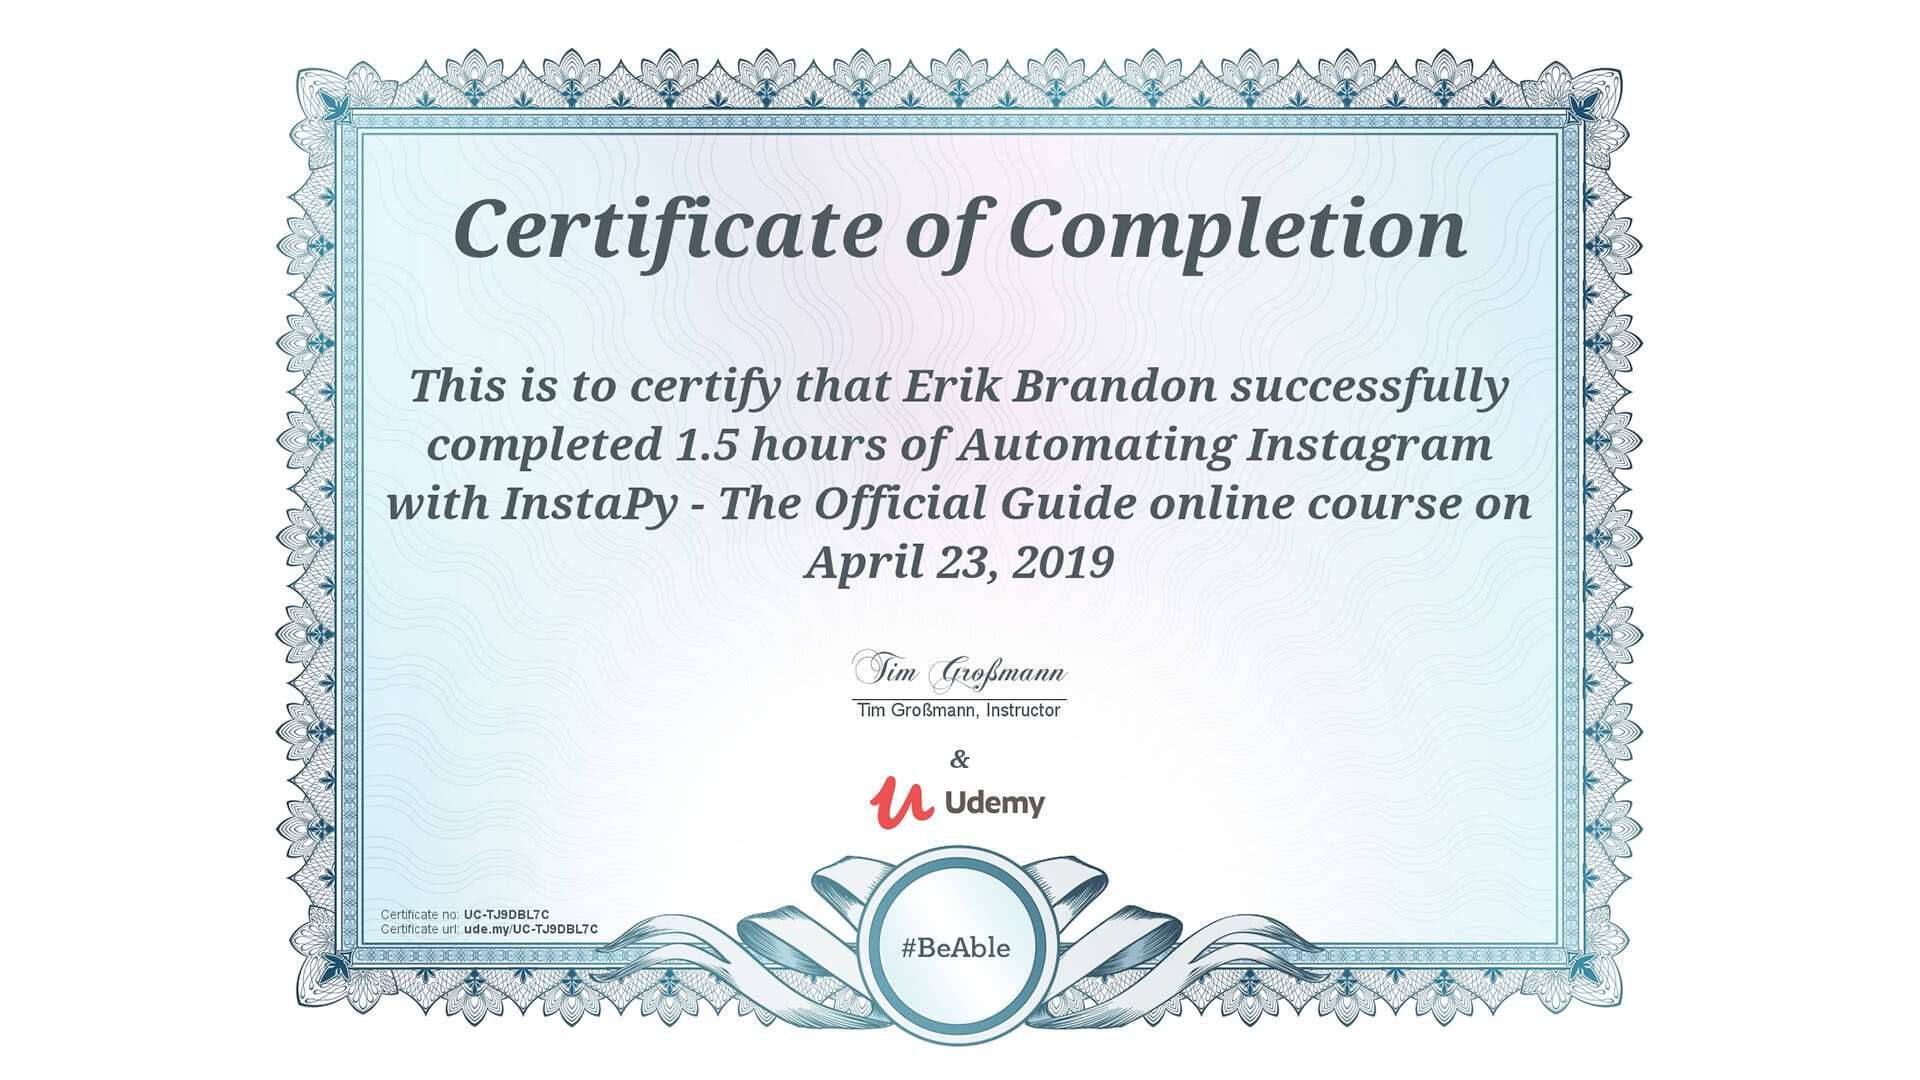 automating-instagram-with-instapy-course-completion-certificate